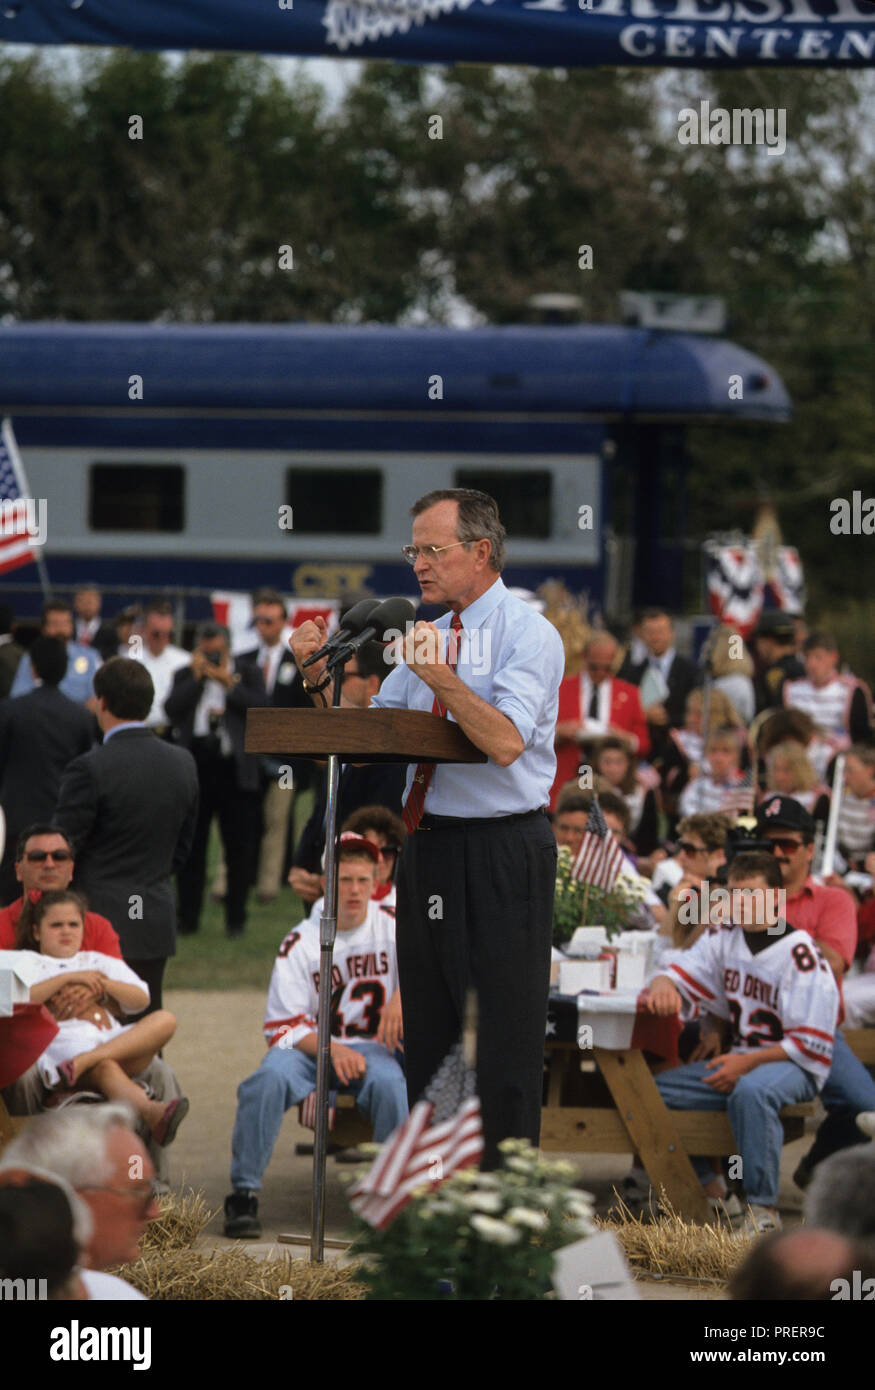 George  HW Bush  (Bush 41), on  a train campaign in October 1992  Photograph by Dennis Brack bb24 - Stock Image